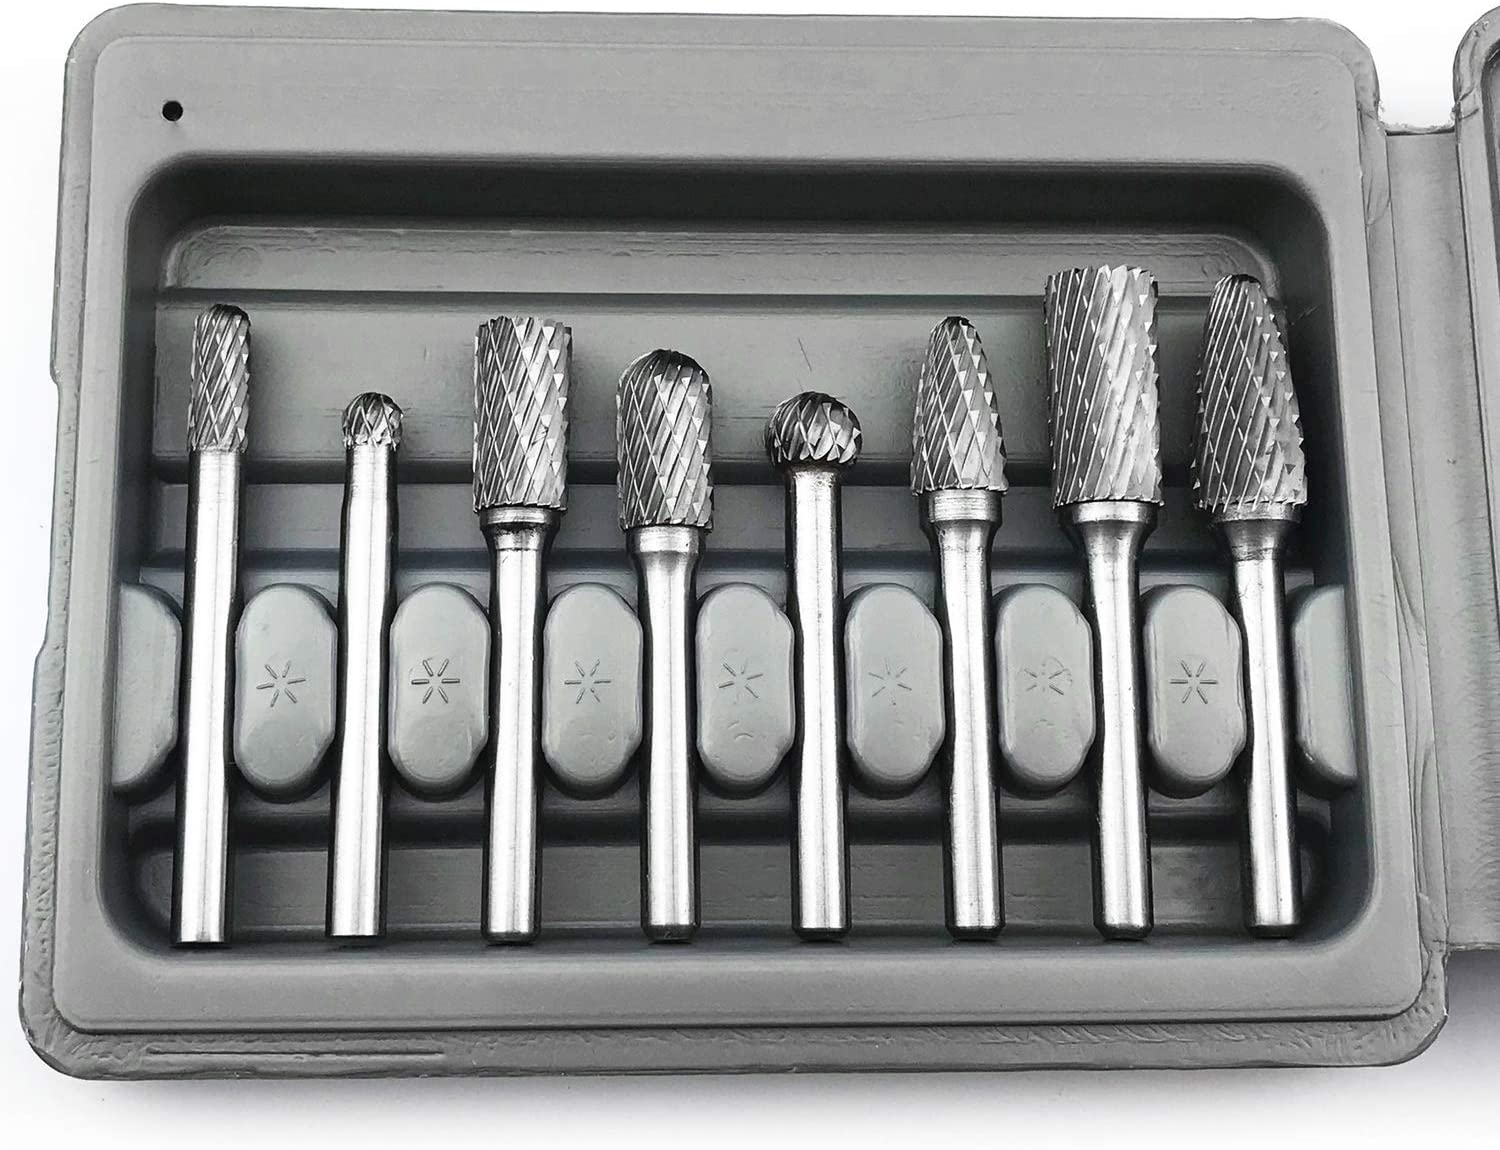 Tungsten Steel Rotary Bits for Marble Metal Wood Carving Engraving Polishing Drilling 10pcs Carbide Rotary Burr Bits Set 1//8/'/' Shank Double Cut Cutting Burr 1//4 Head Rotary Tool Accessories Kit